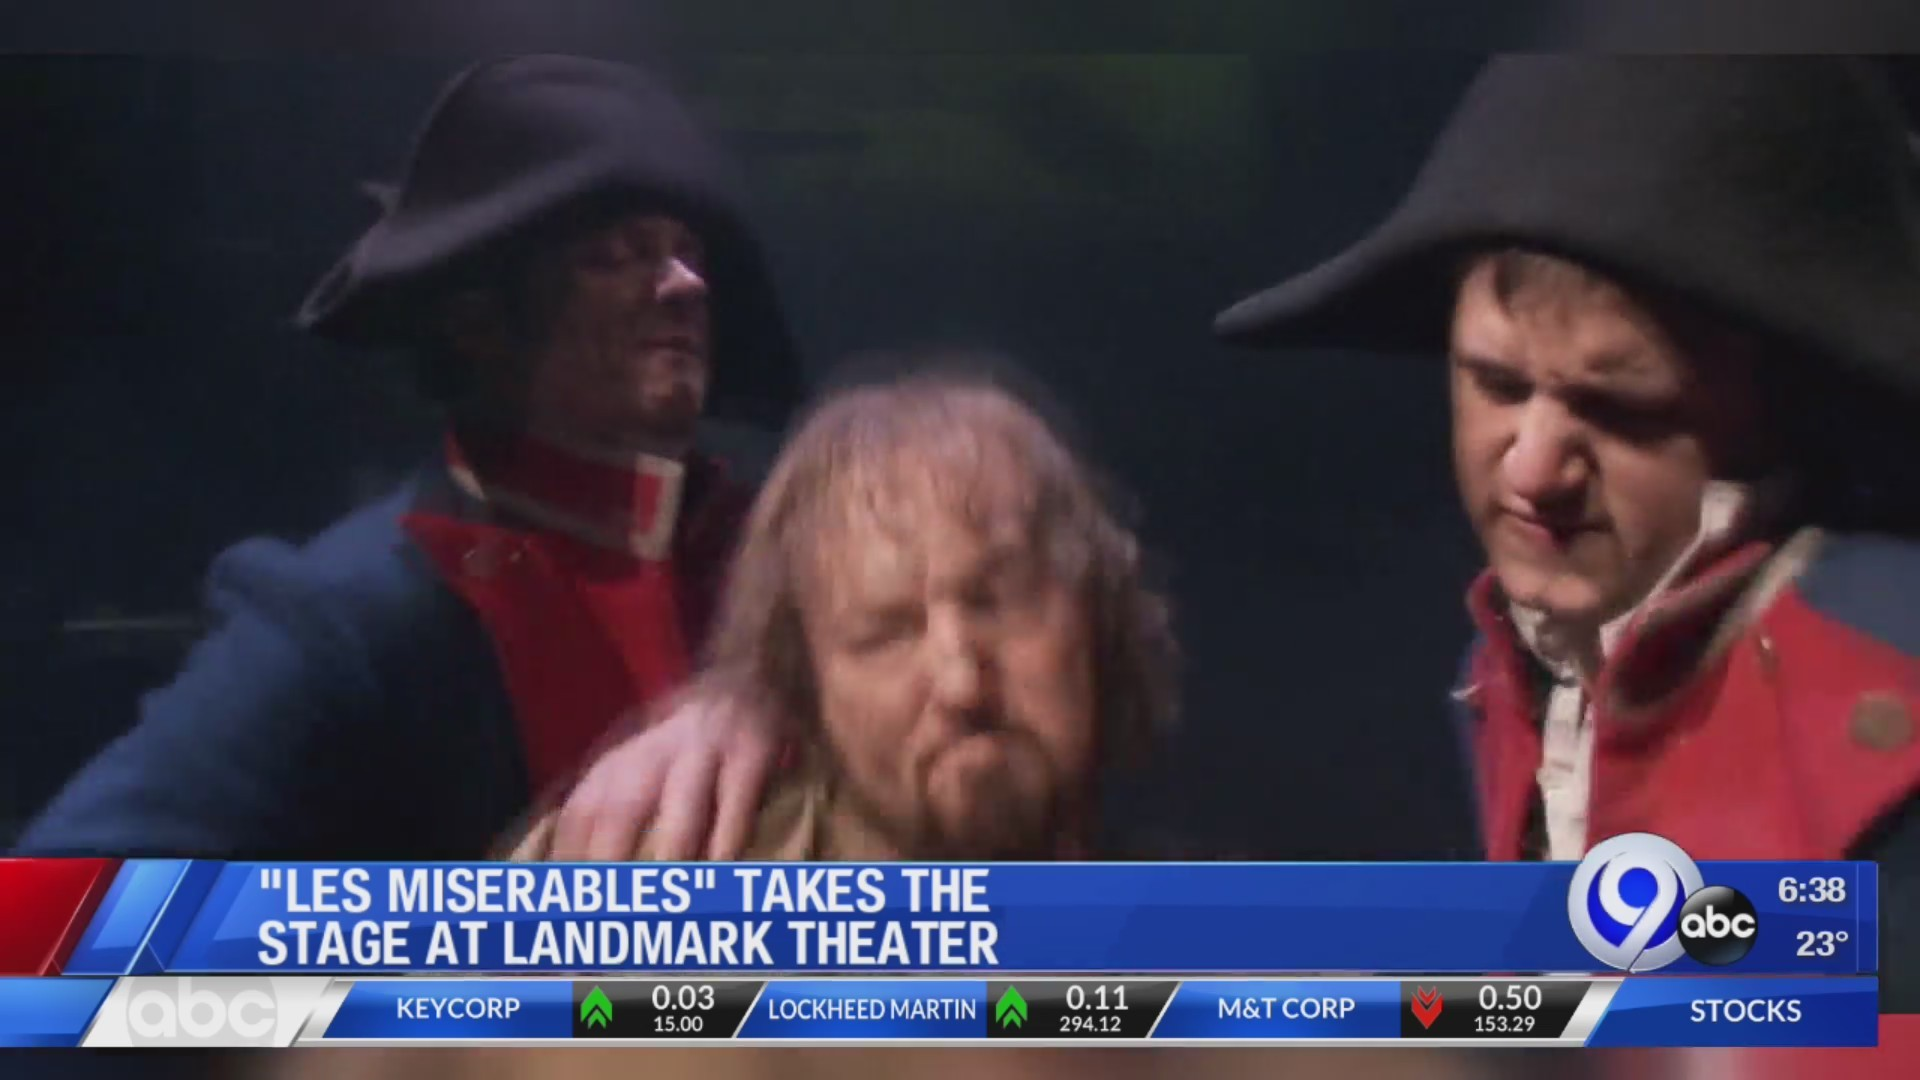 Les_Miserables_comes_to_the_Landmark_The_0_20190326112948